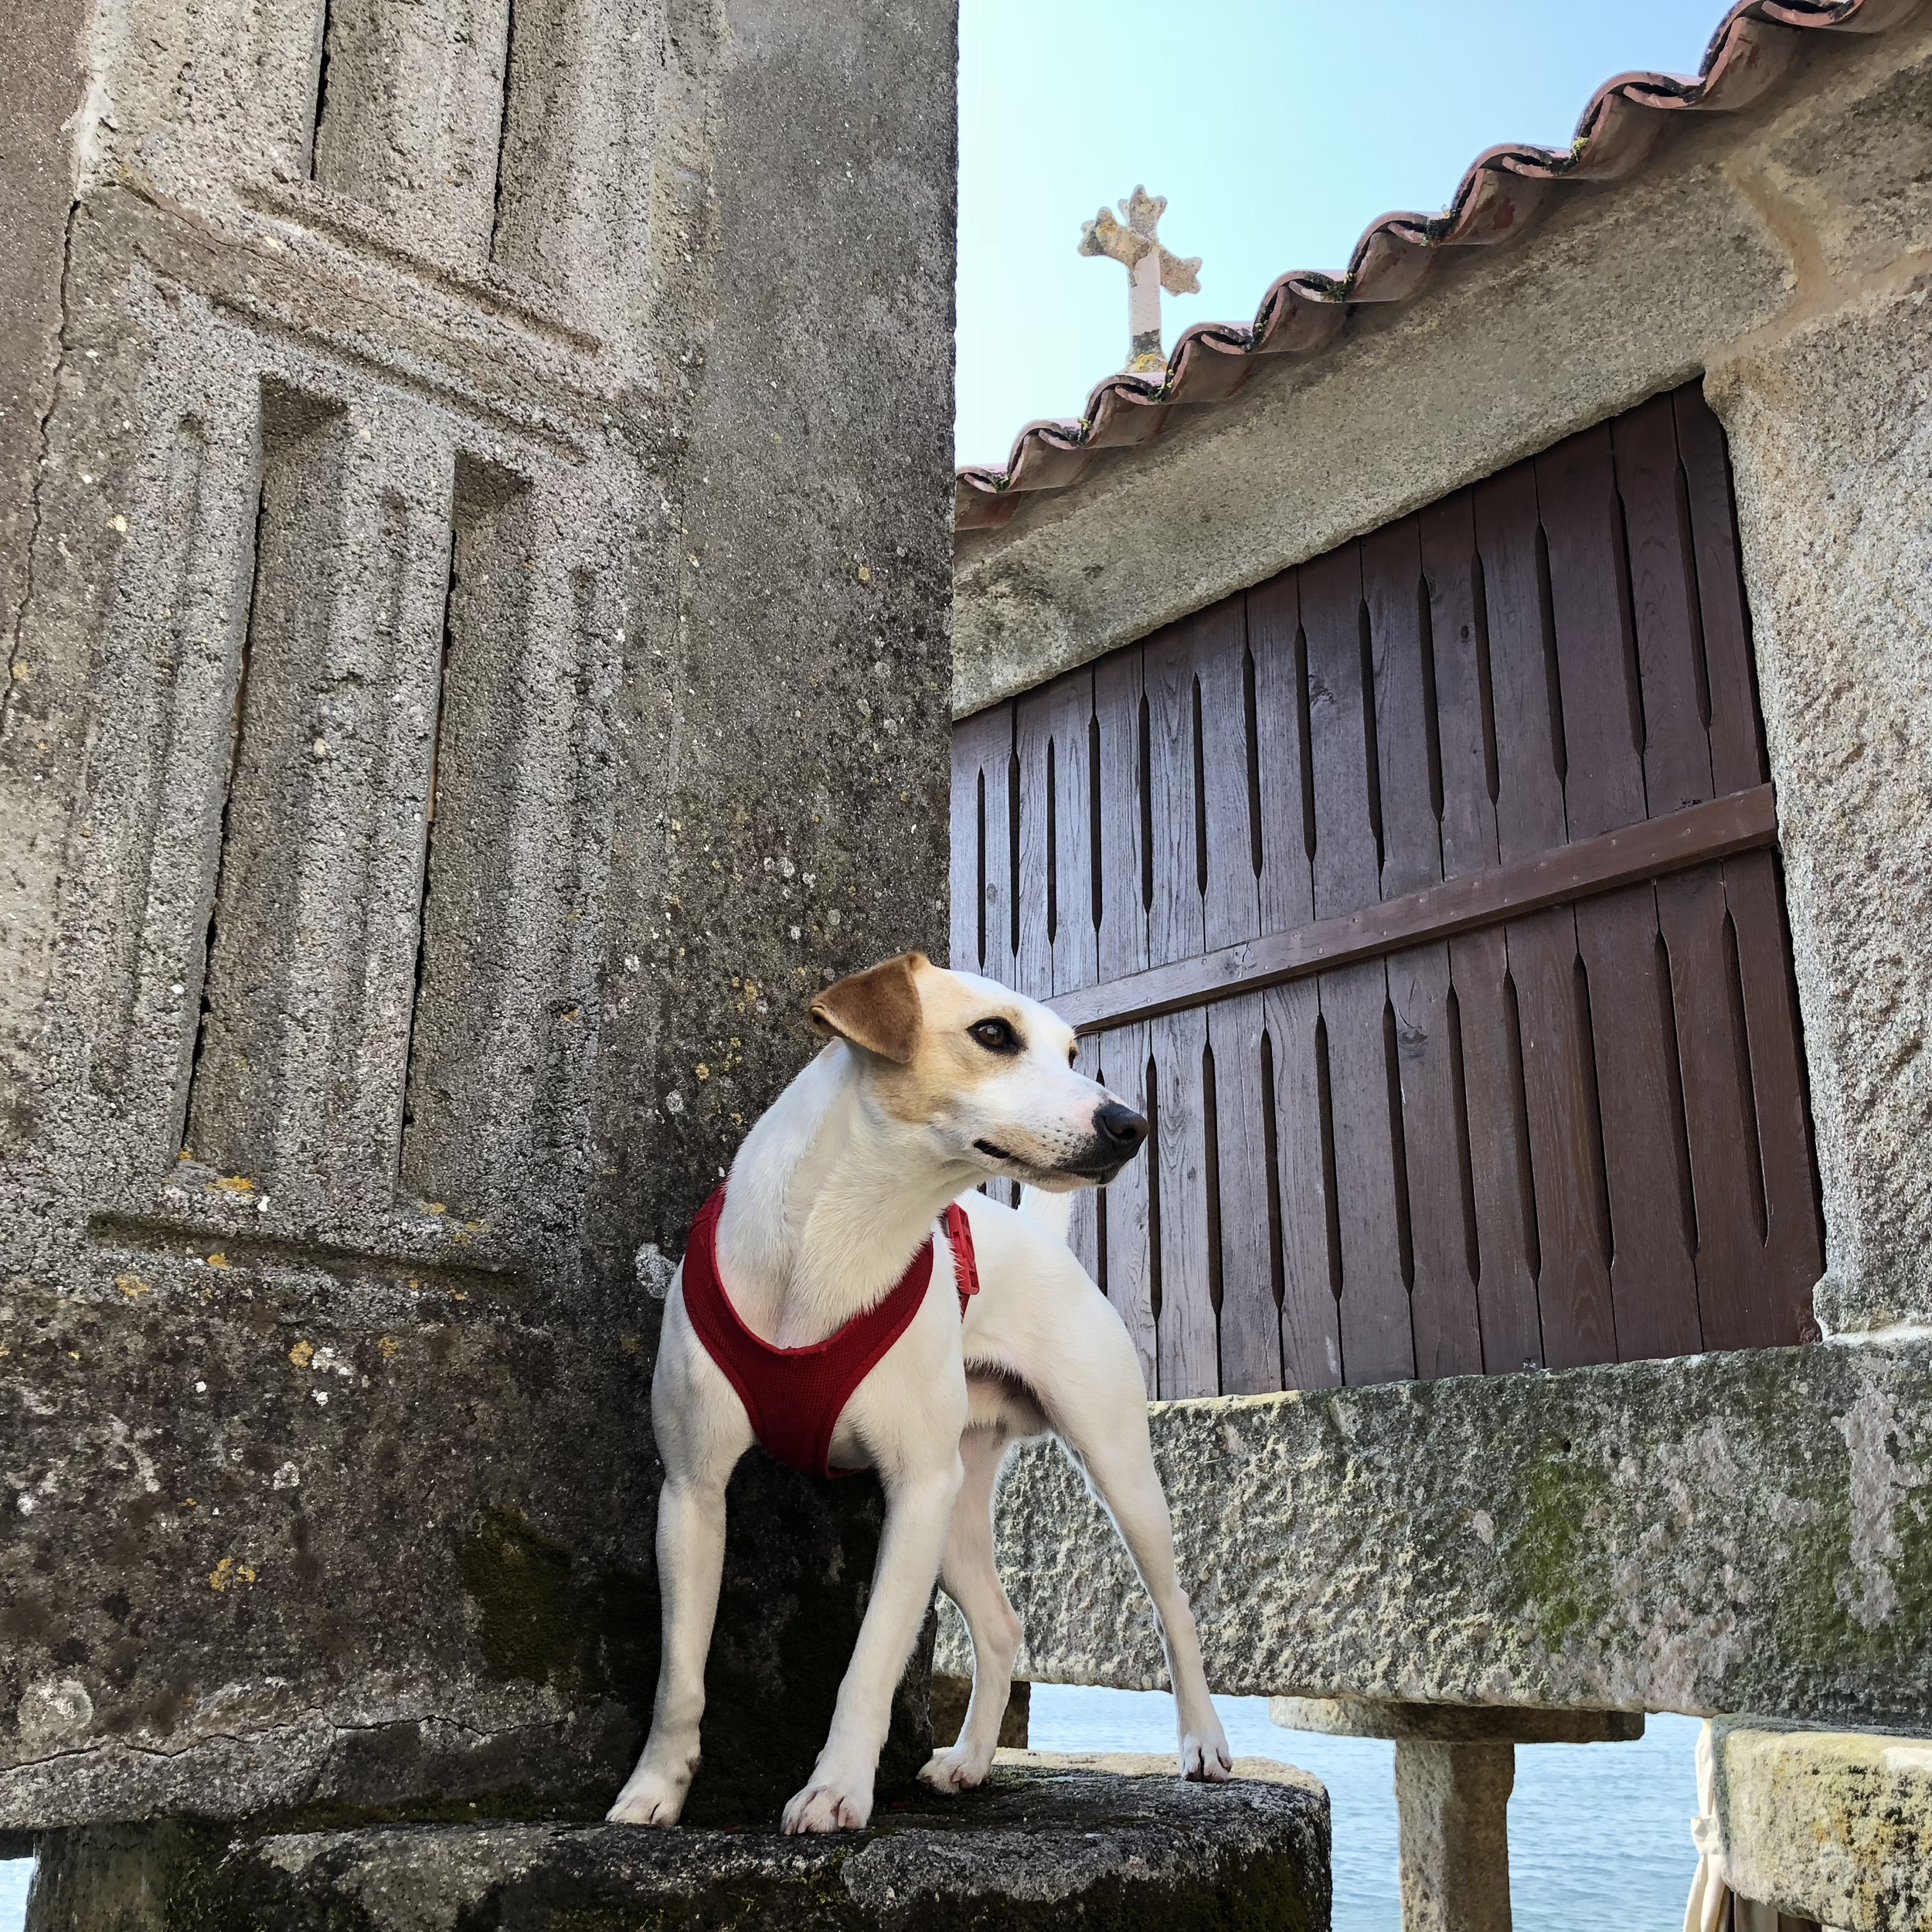 Pipper at the raised granaries of Combarro.